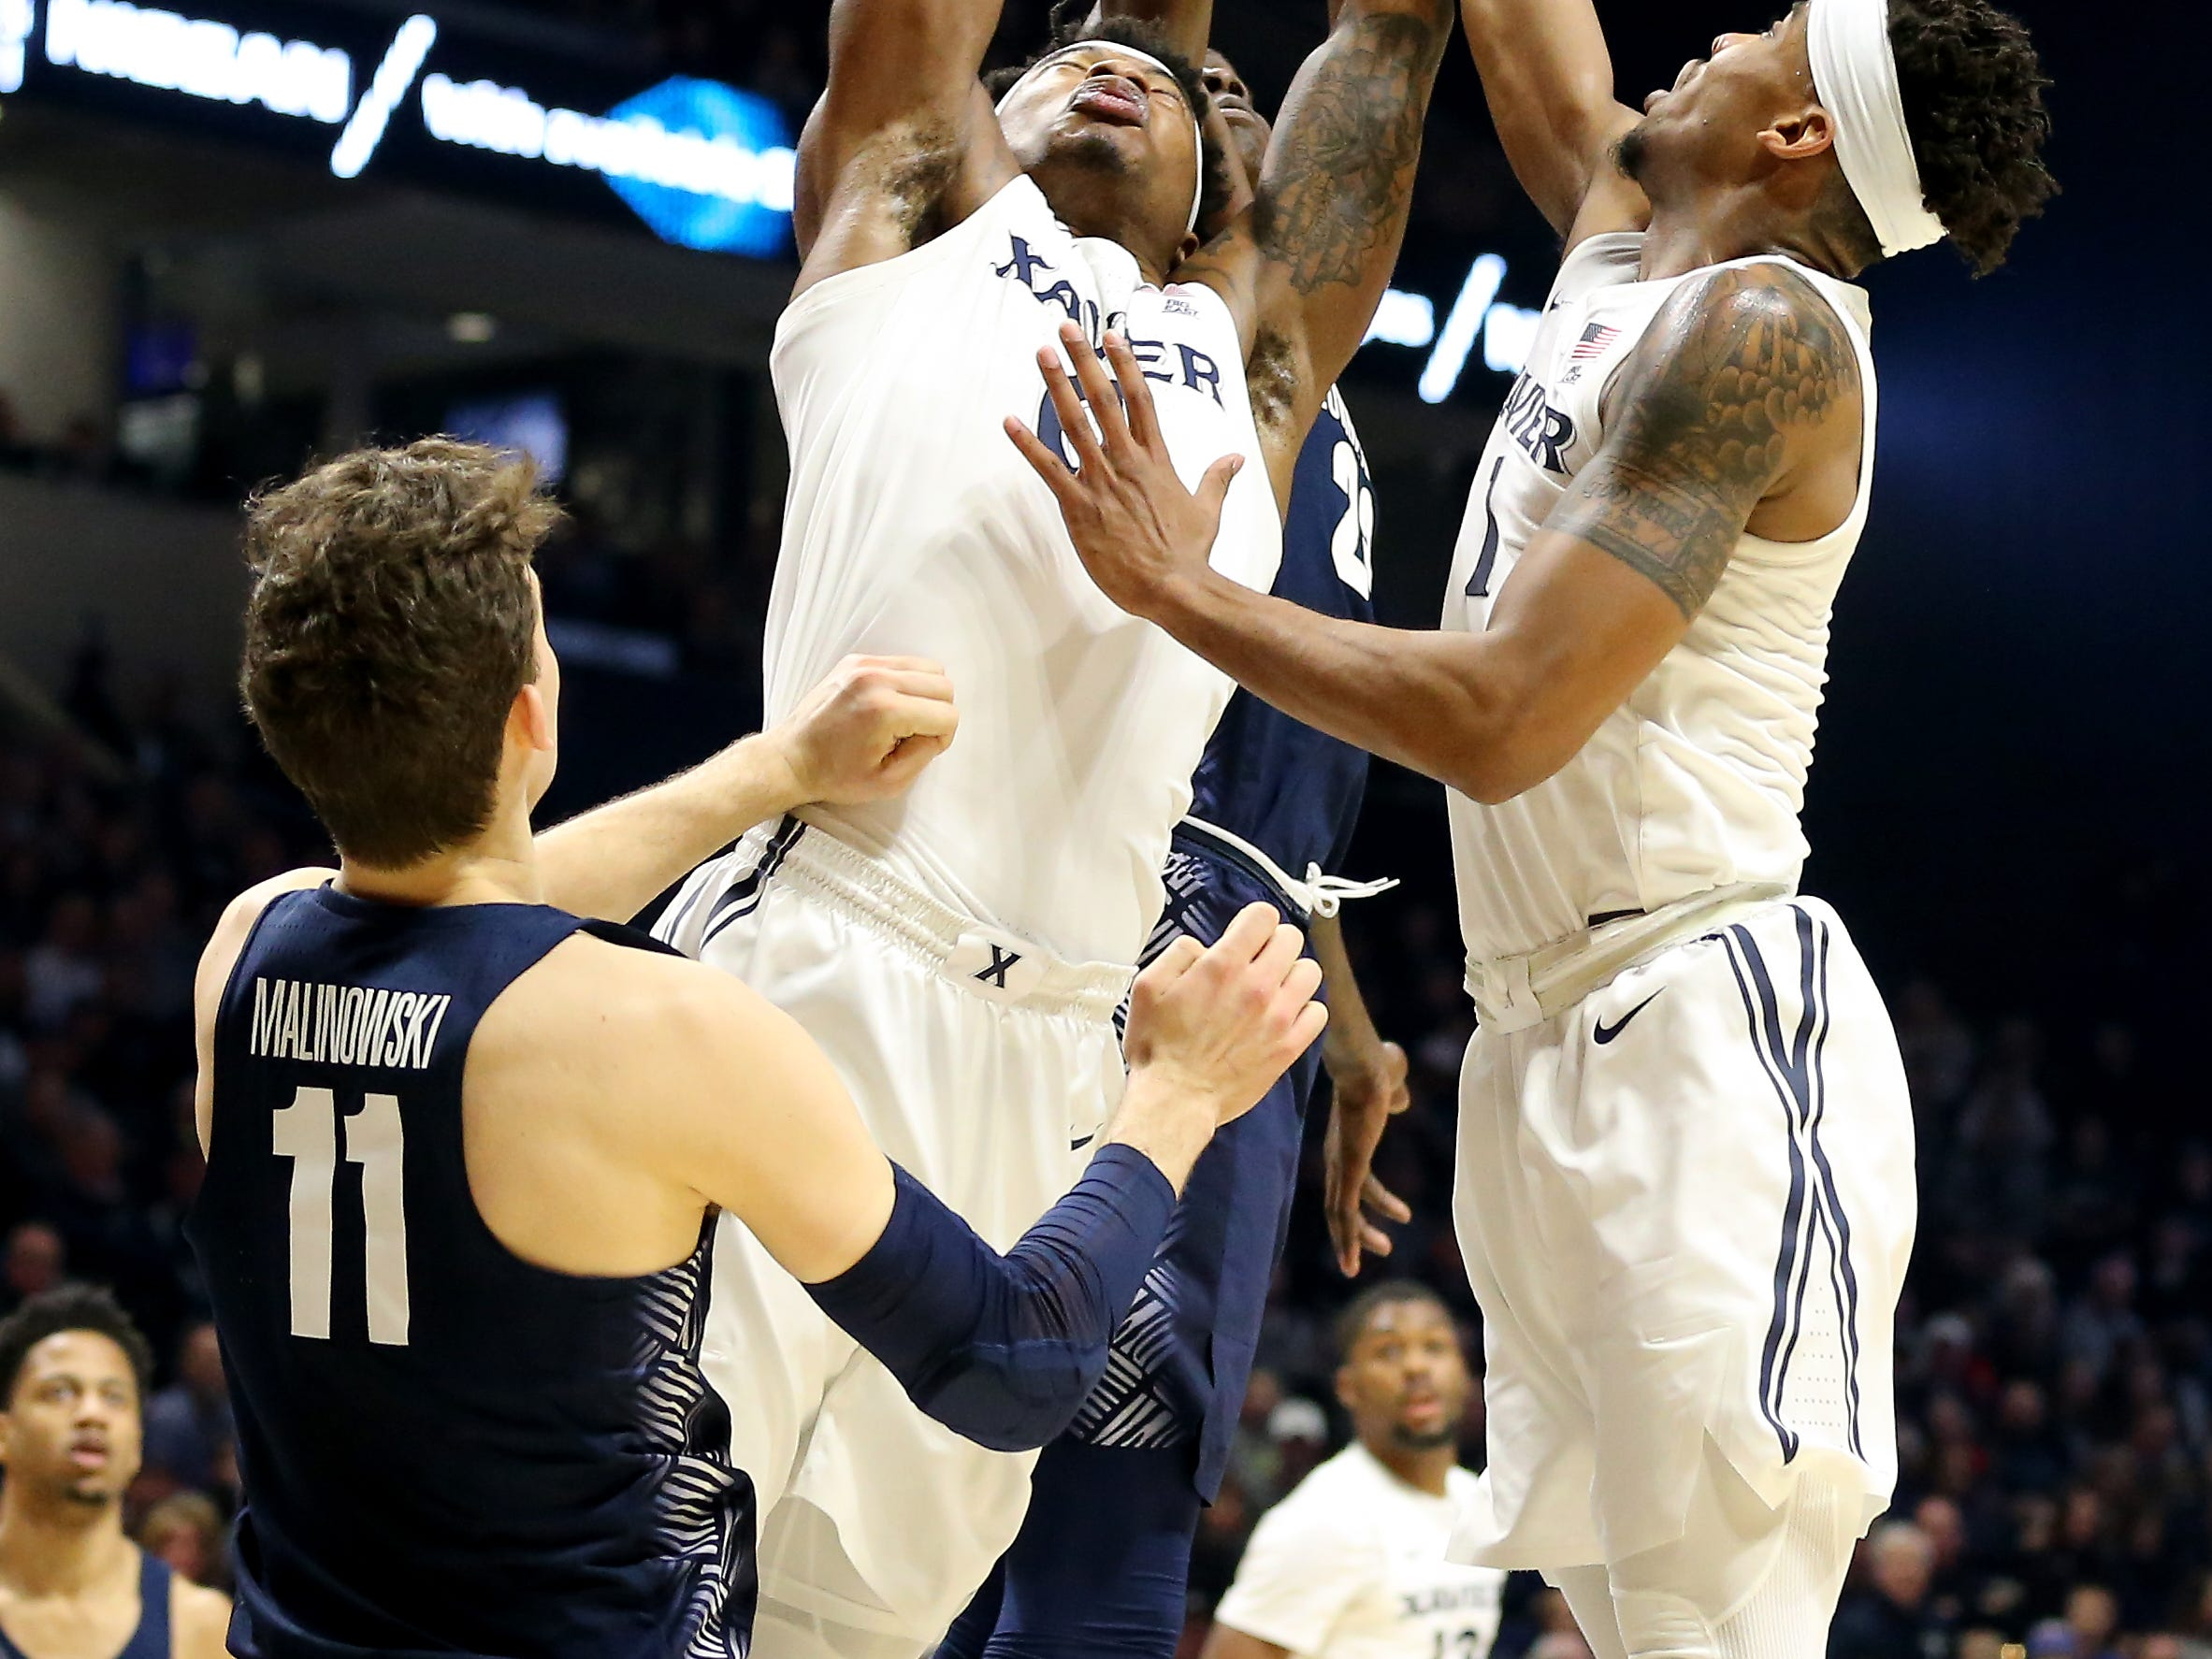 Xavier Musketeers forward Tyrique Jones (0) and Xavier Musketeers guard Paul Scruggs (1) go up for a rebound in the second half of an NCAA basketball game, Wednesday, Jan. 9, 2019, at the Cintas Center in Cincinnati. Xavier Musketeers won 81-75 against the Georgetown Hoyas.